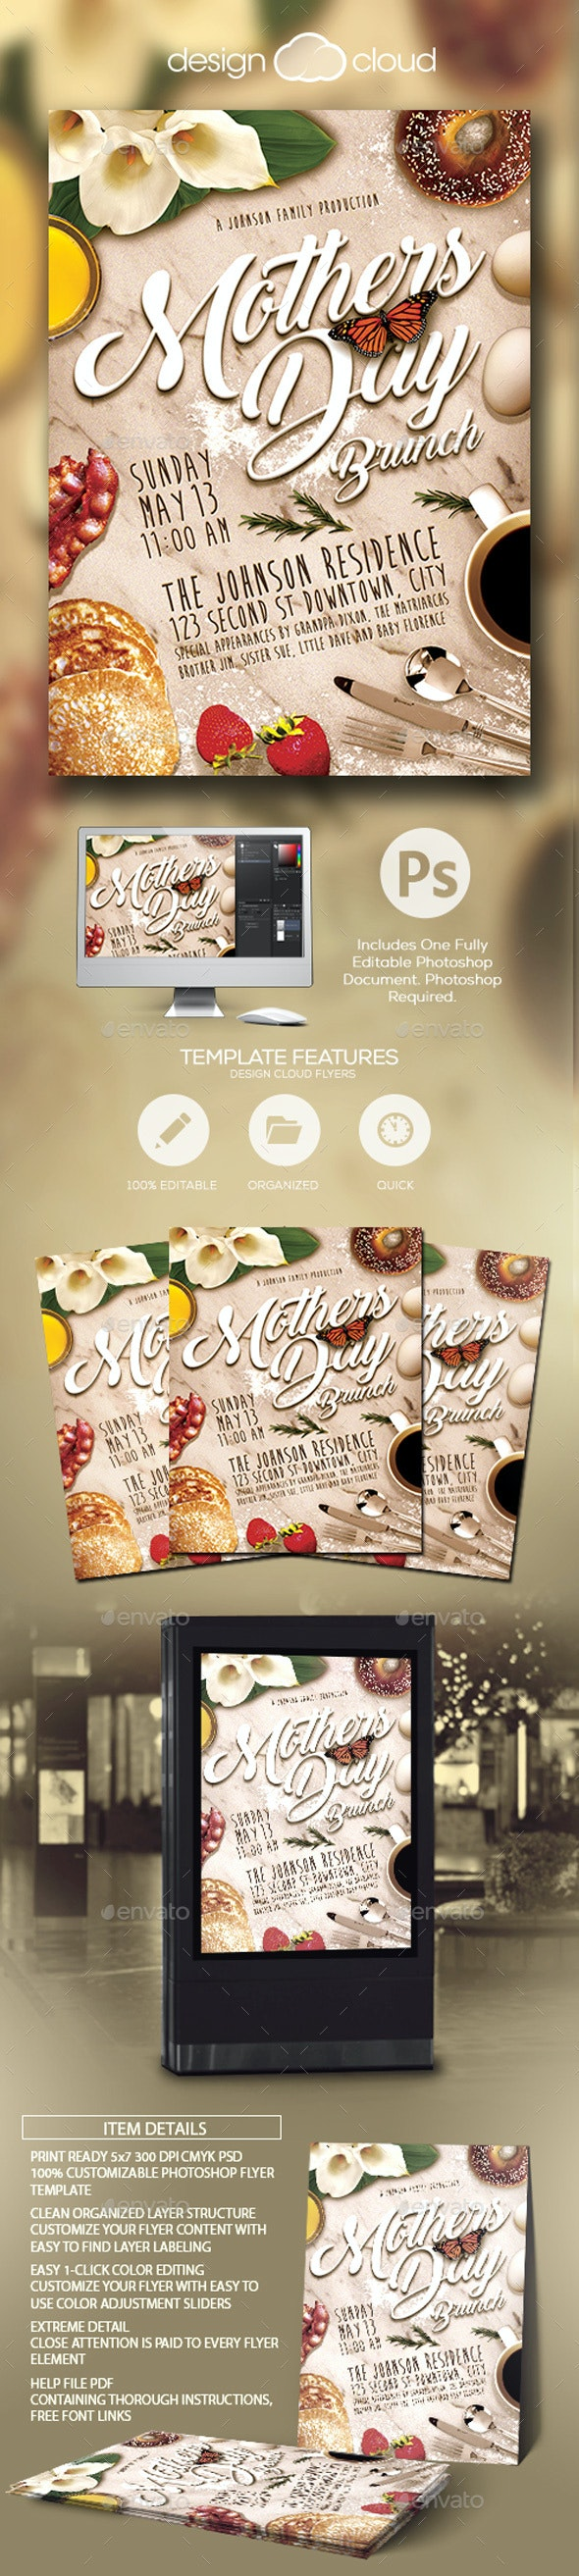 Mothers Day Brunch - Holidays Events